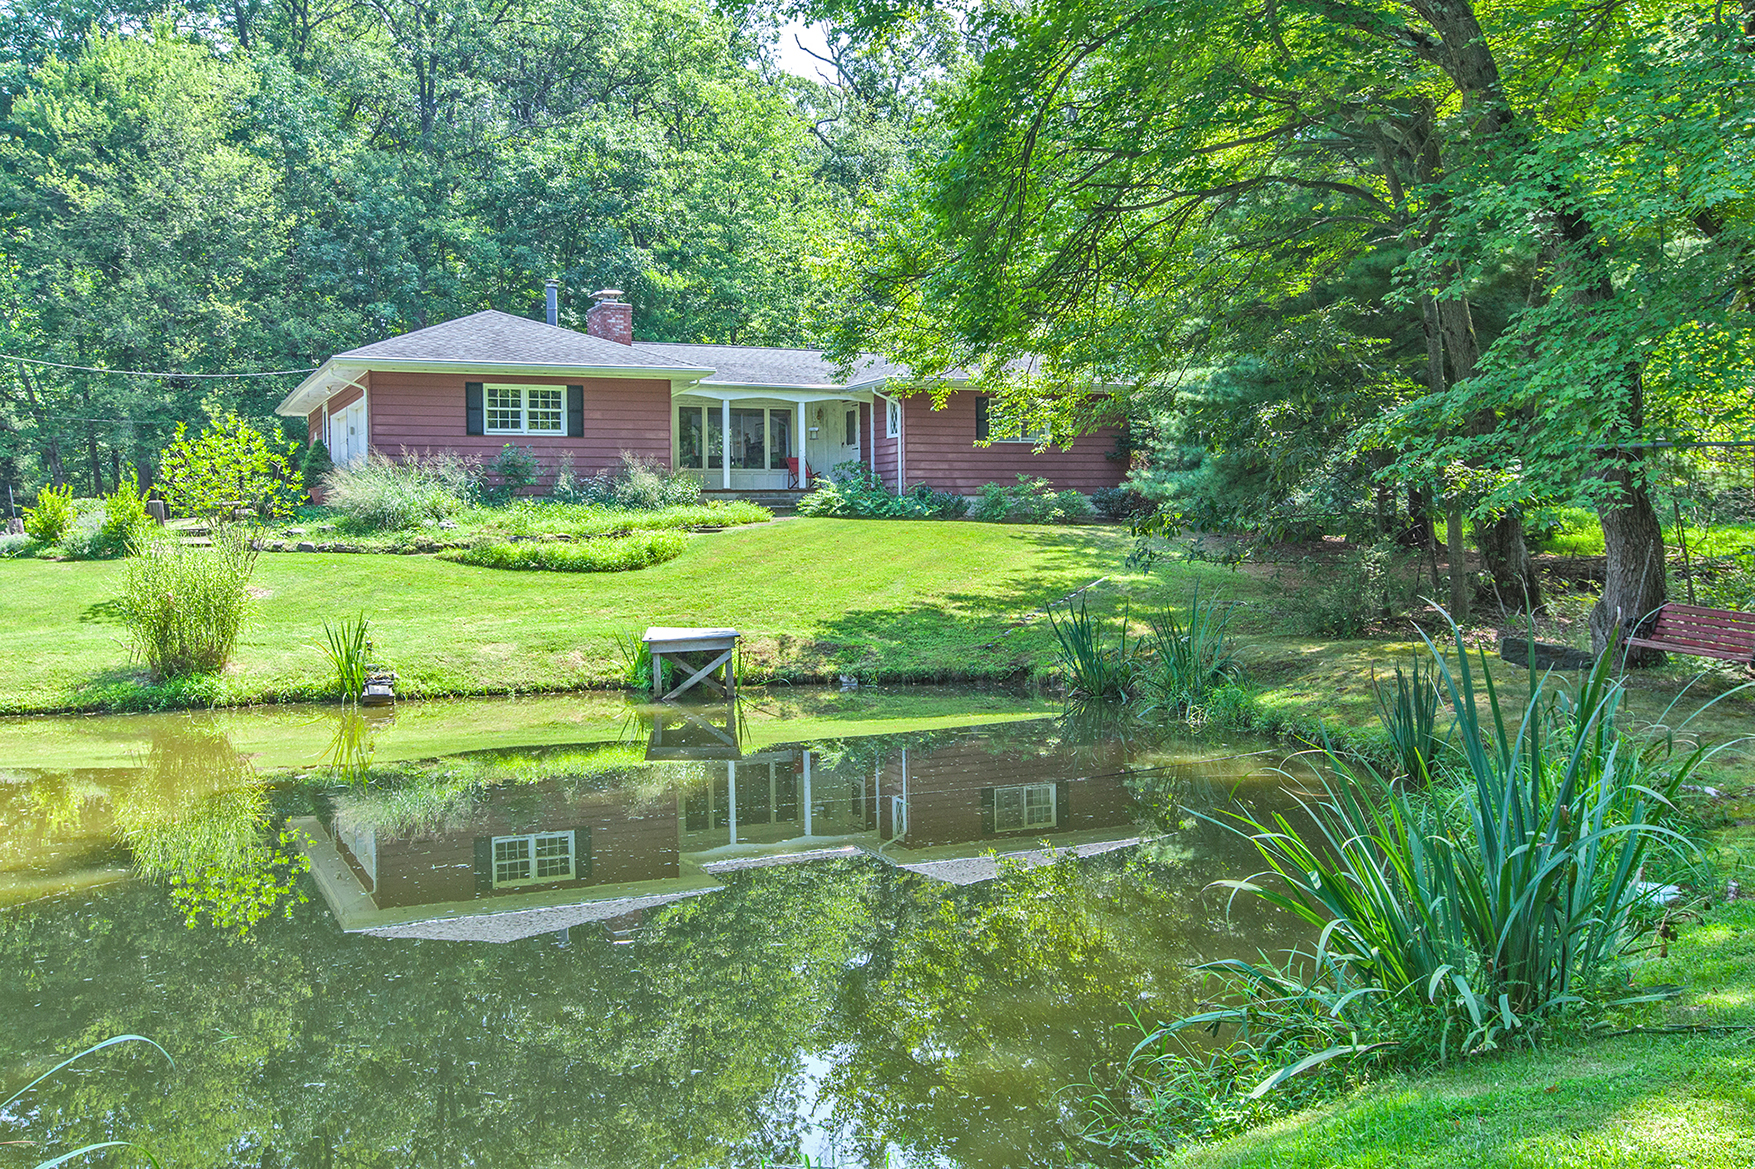 Property For Sale at A Country Retreat, with All the Comforts of Home - East Amwell Township